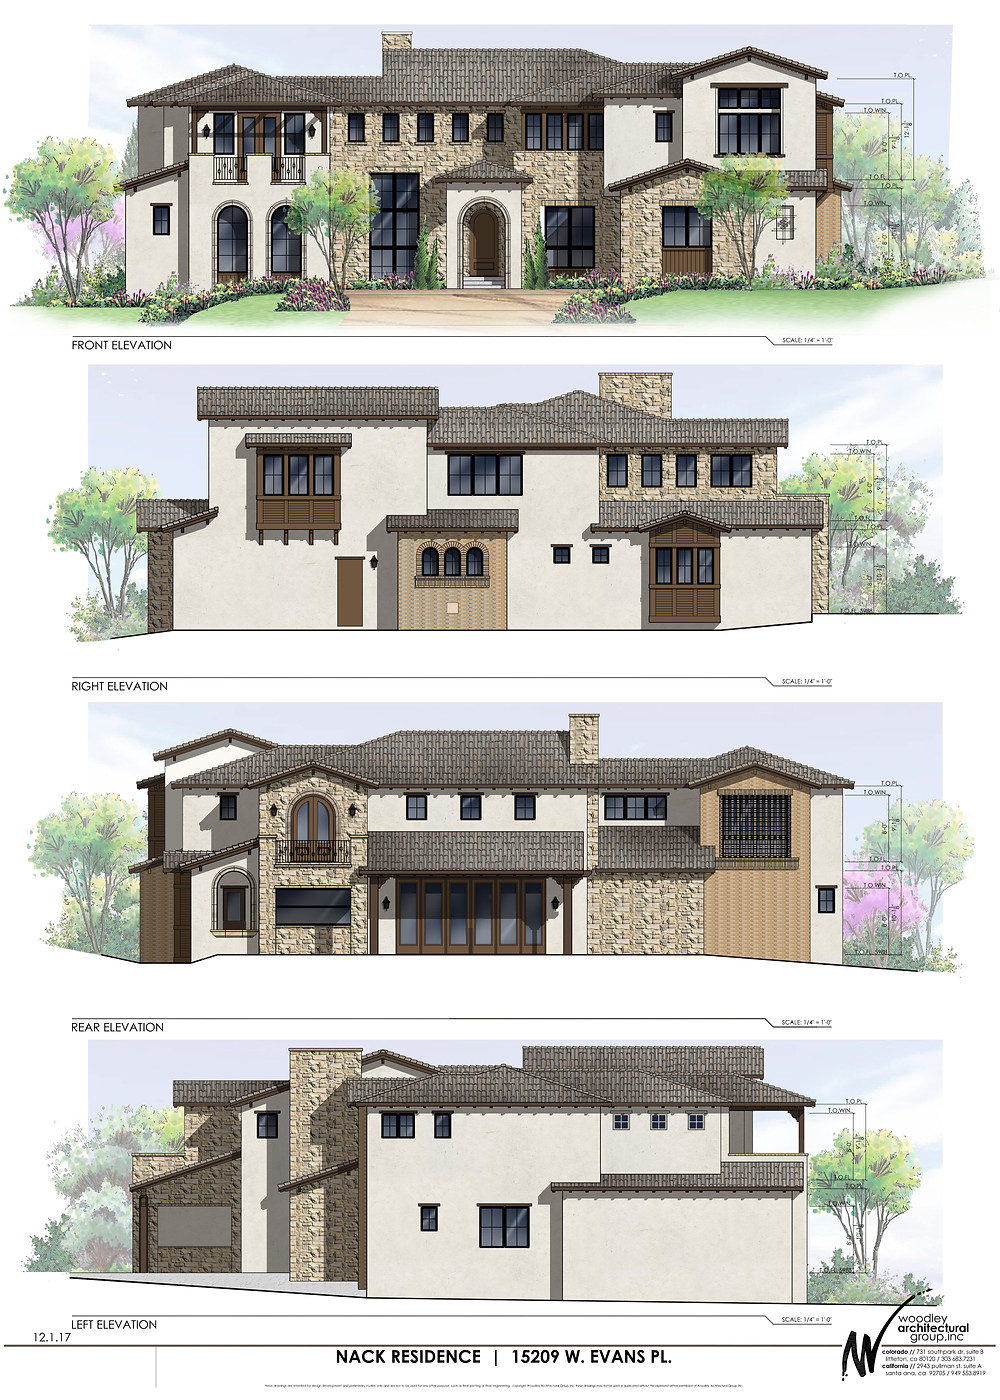 Excited to build this beautiful home.  Breaking ground early 2018.